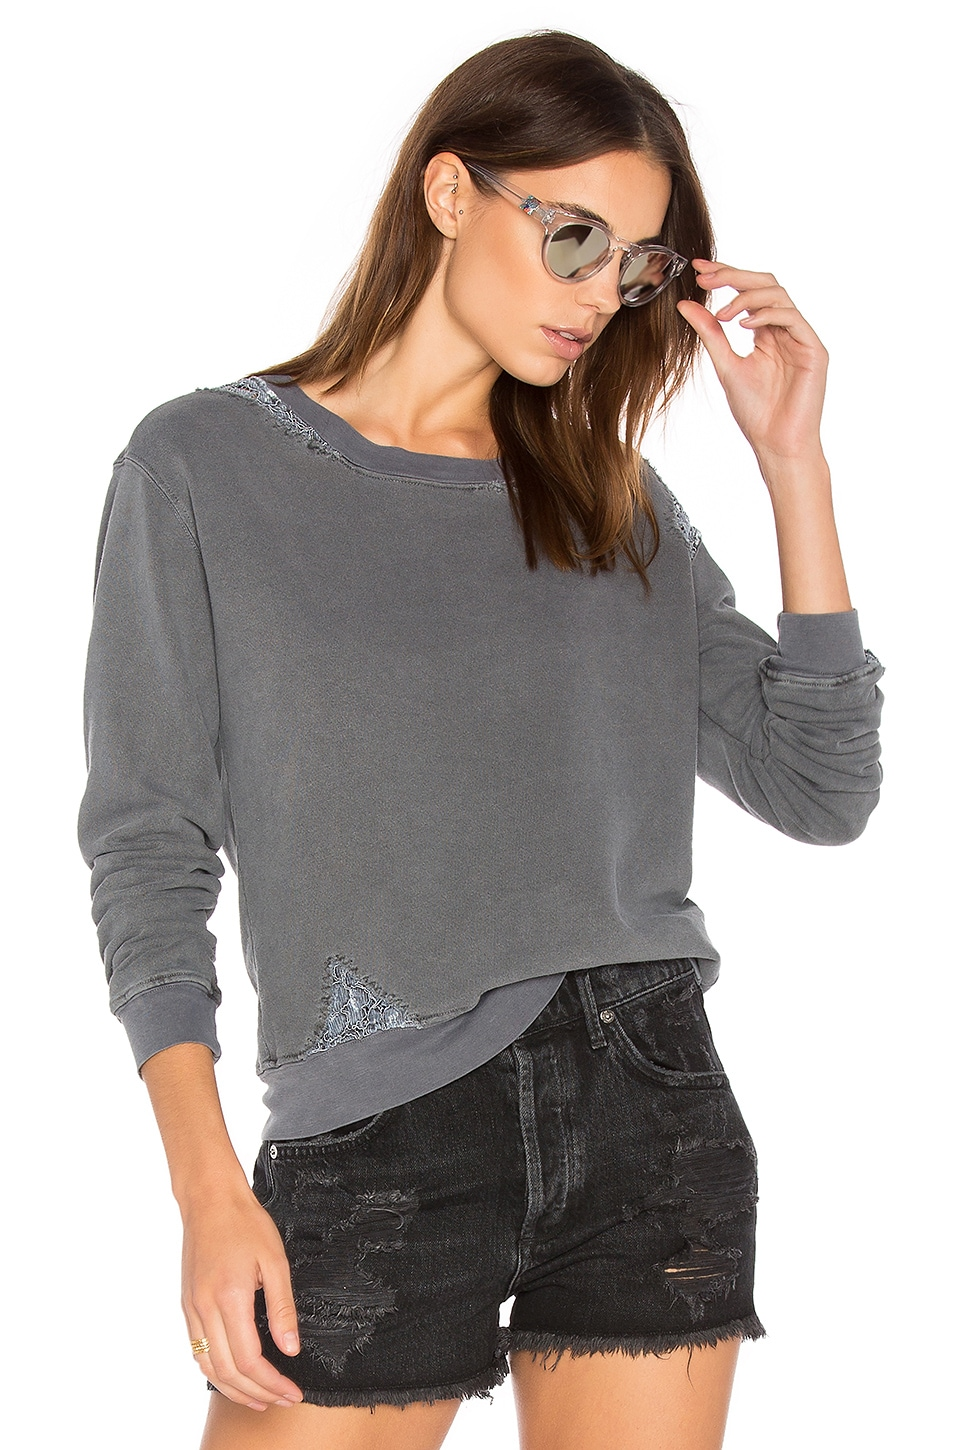 French Terry Sweatshirt with Lace by Stateside